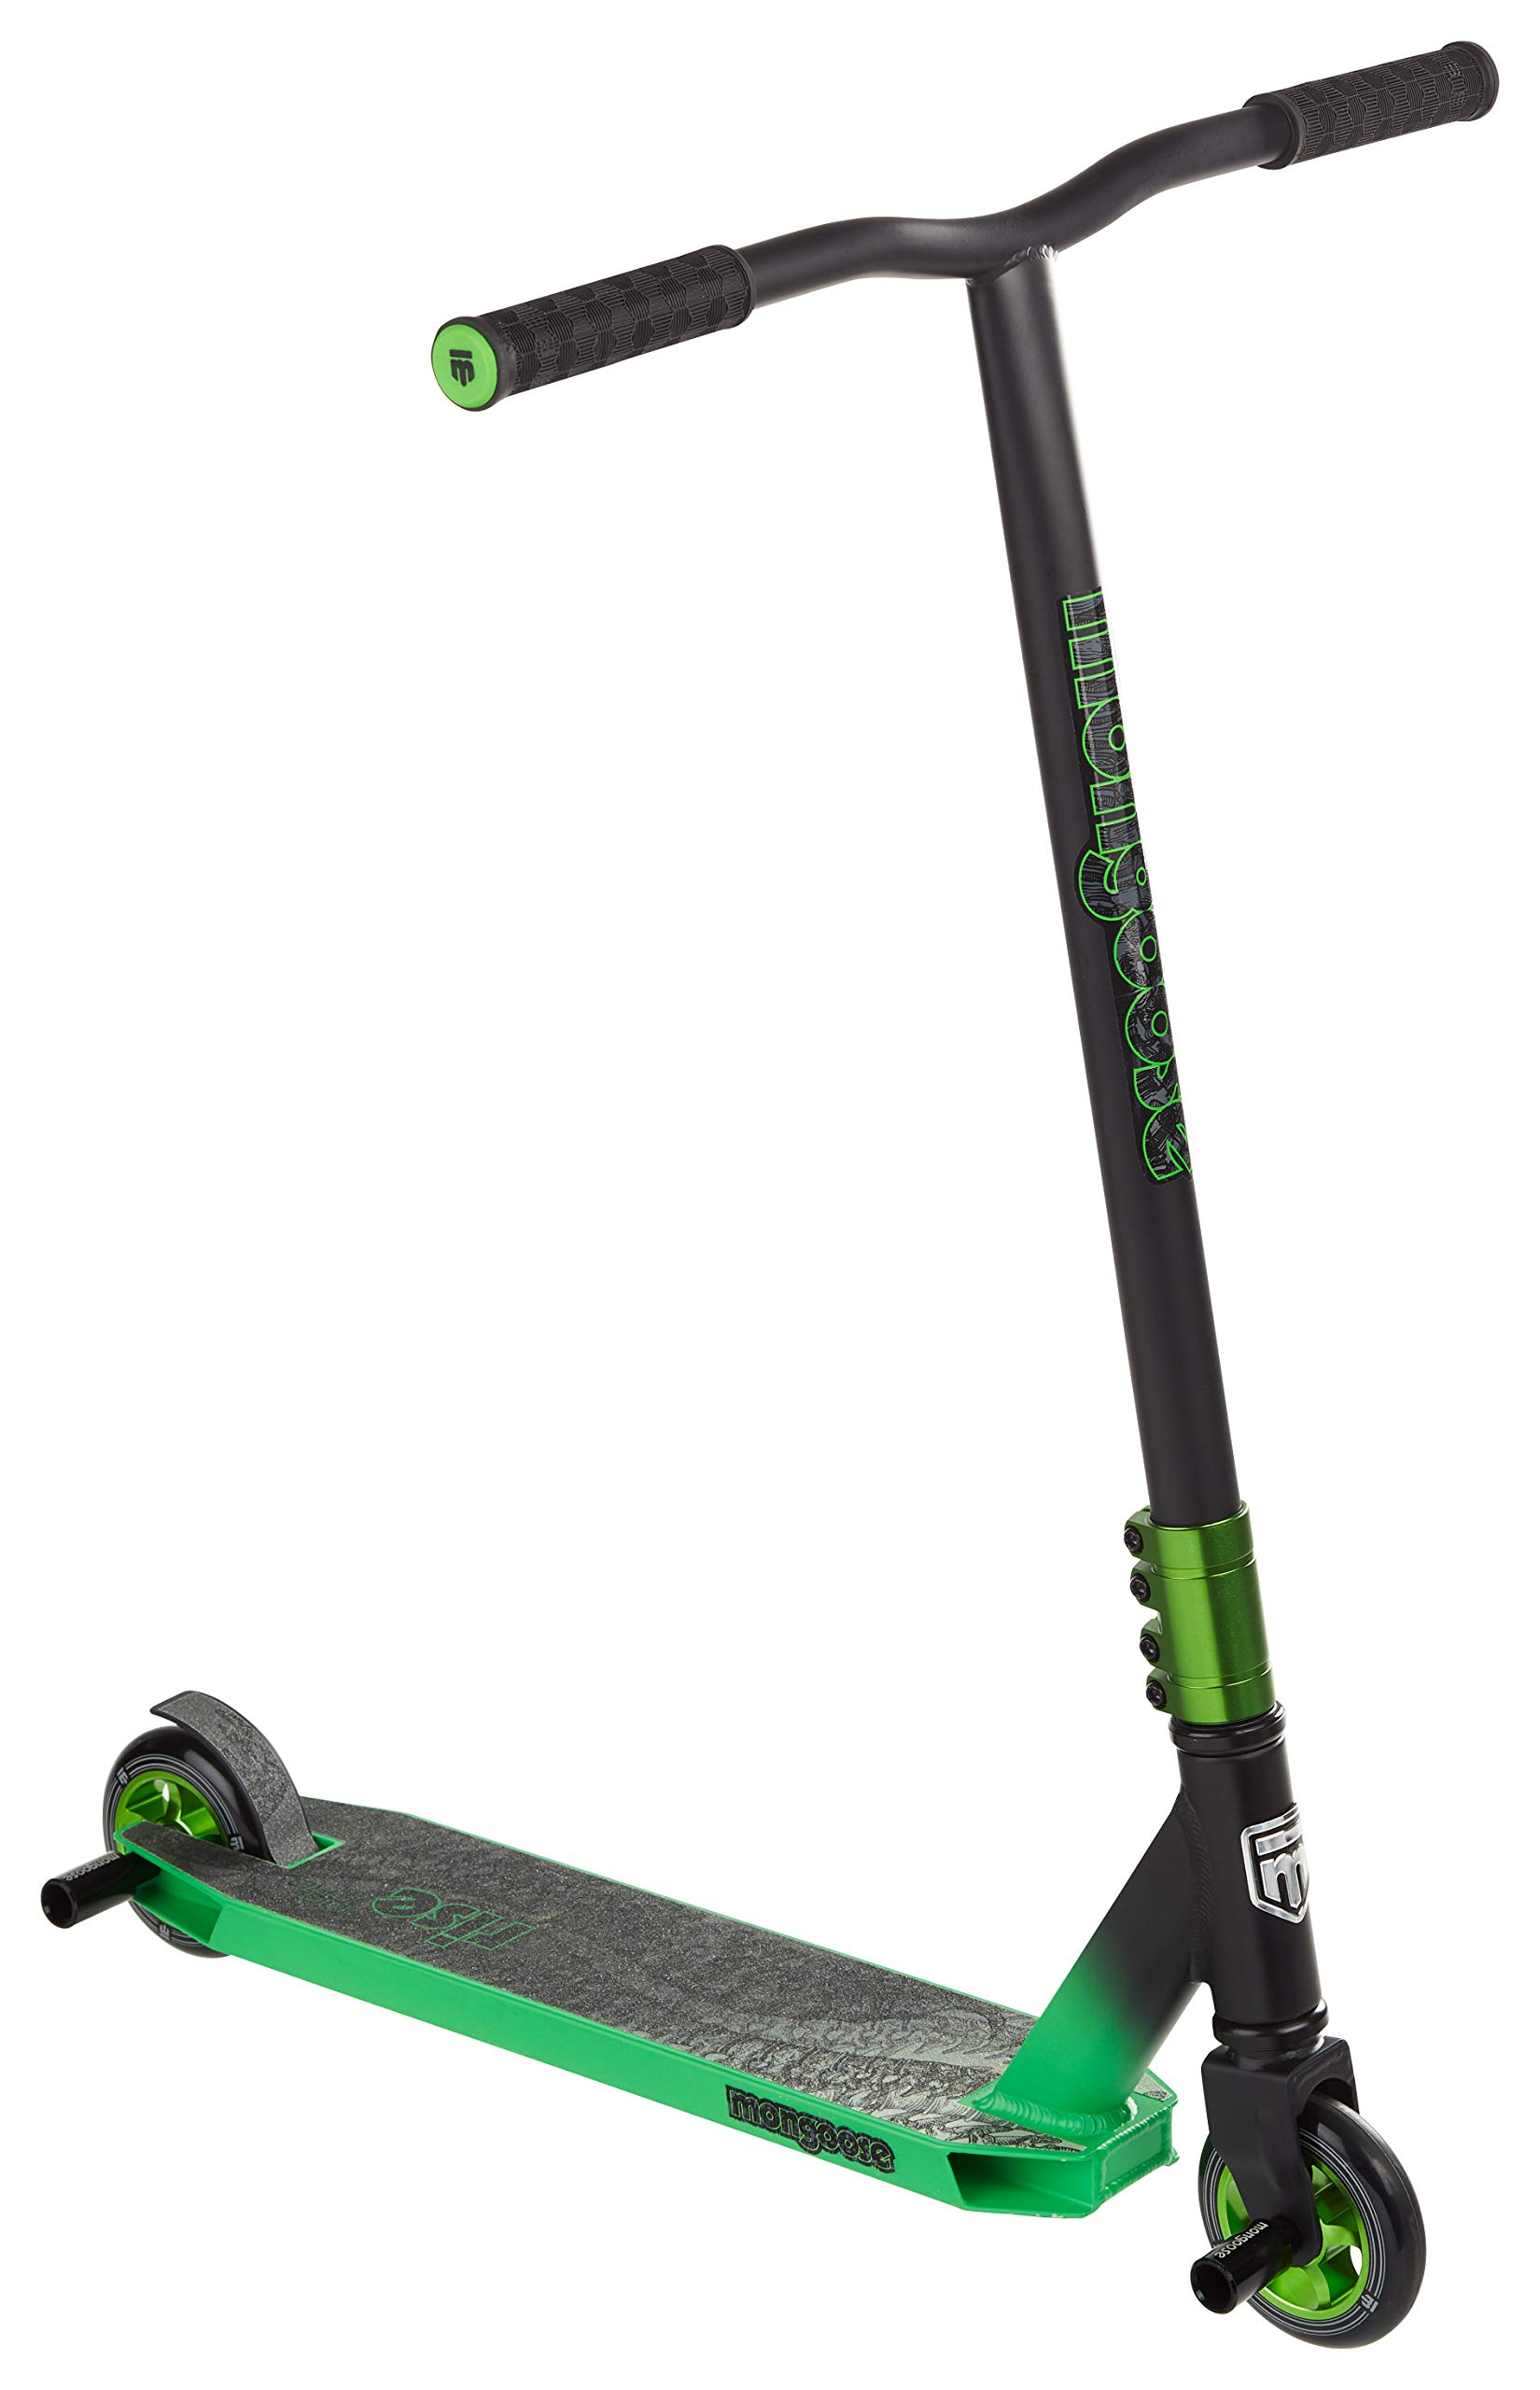 Mongoose Rise 100 Pro Freestyle Stunt Kick Scooter, Featuring Lightweight Alloy Deck with Full-Coverage Max Grip and Bike-Style Handlebars, Wheel Pegs Included, 100mm Alloy Wheels, Black/Green